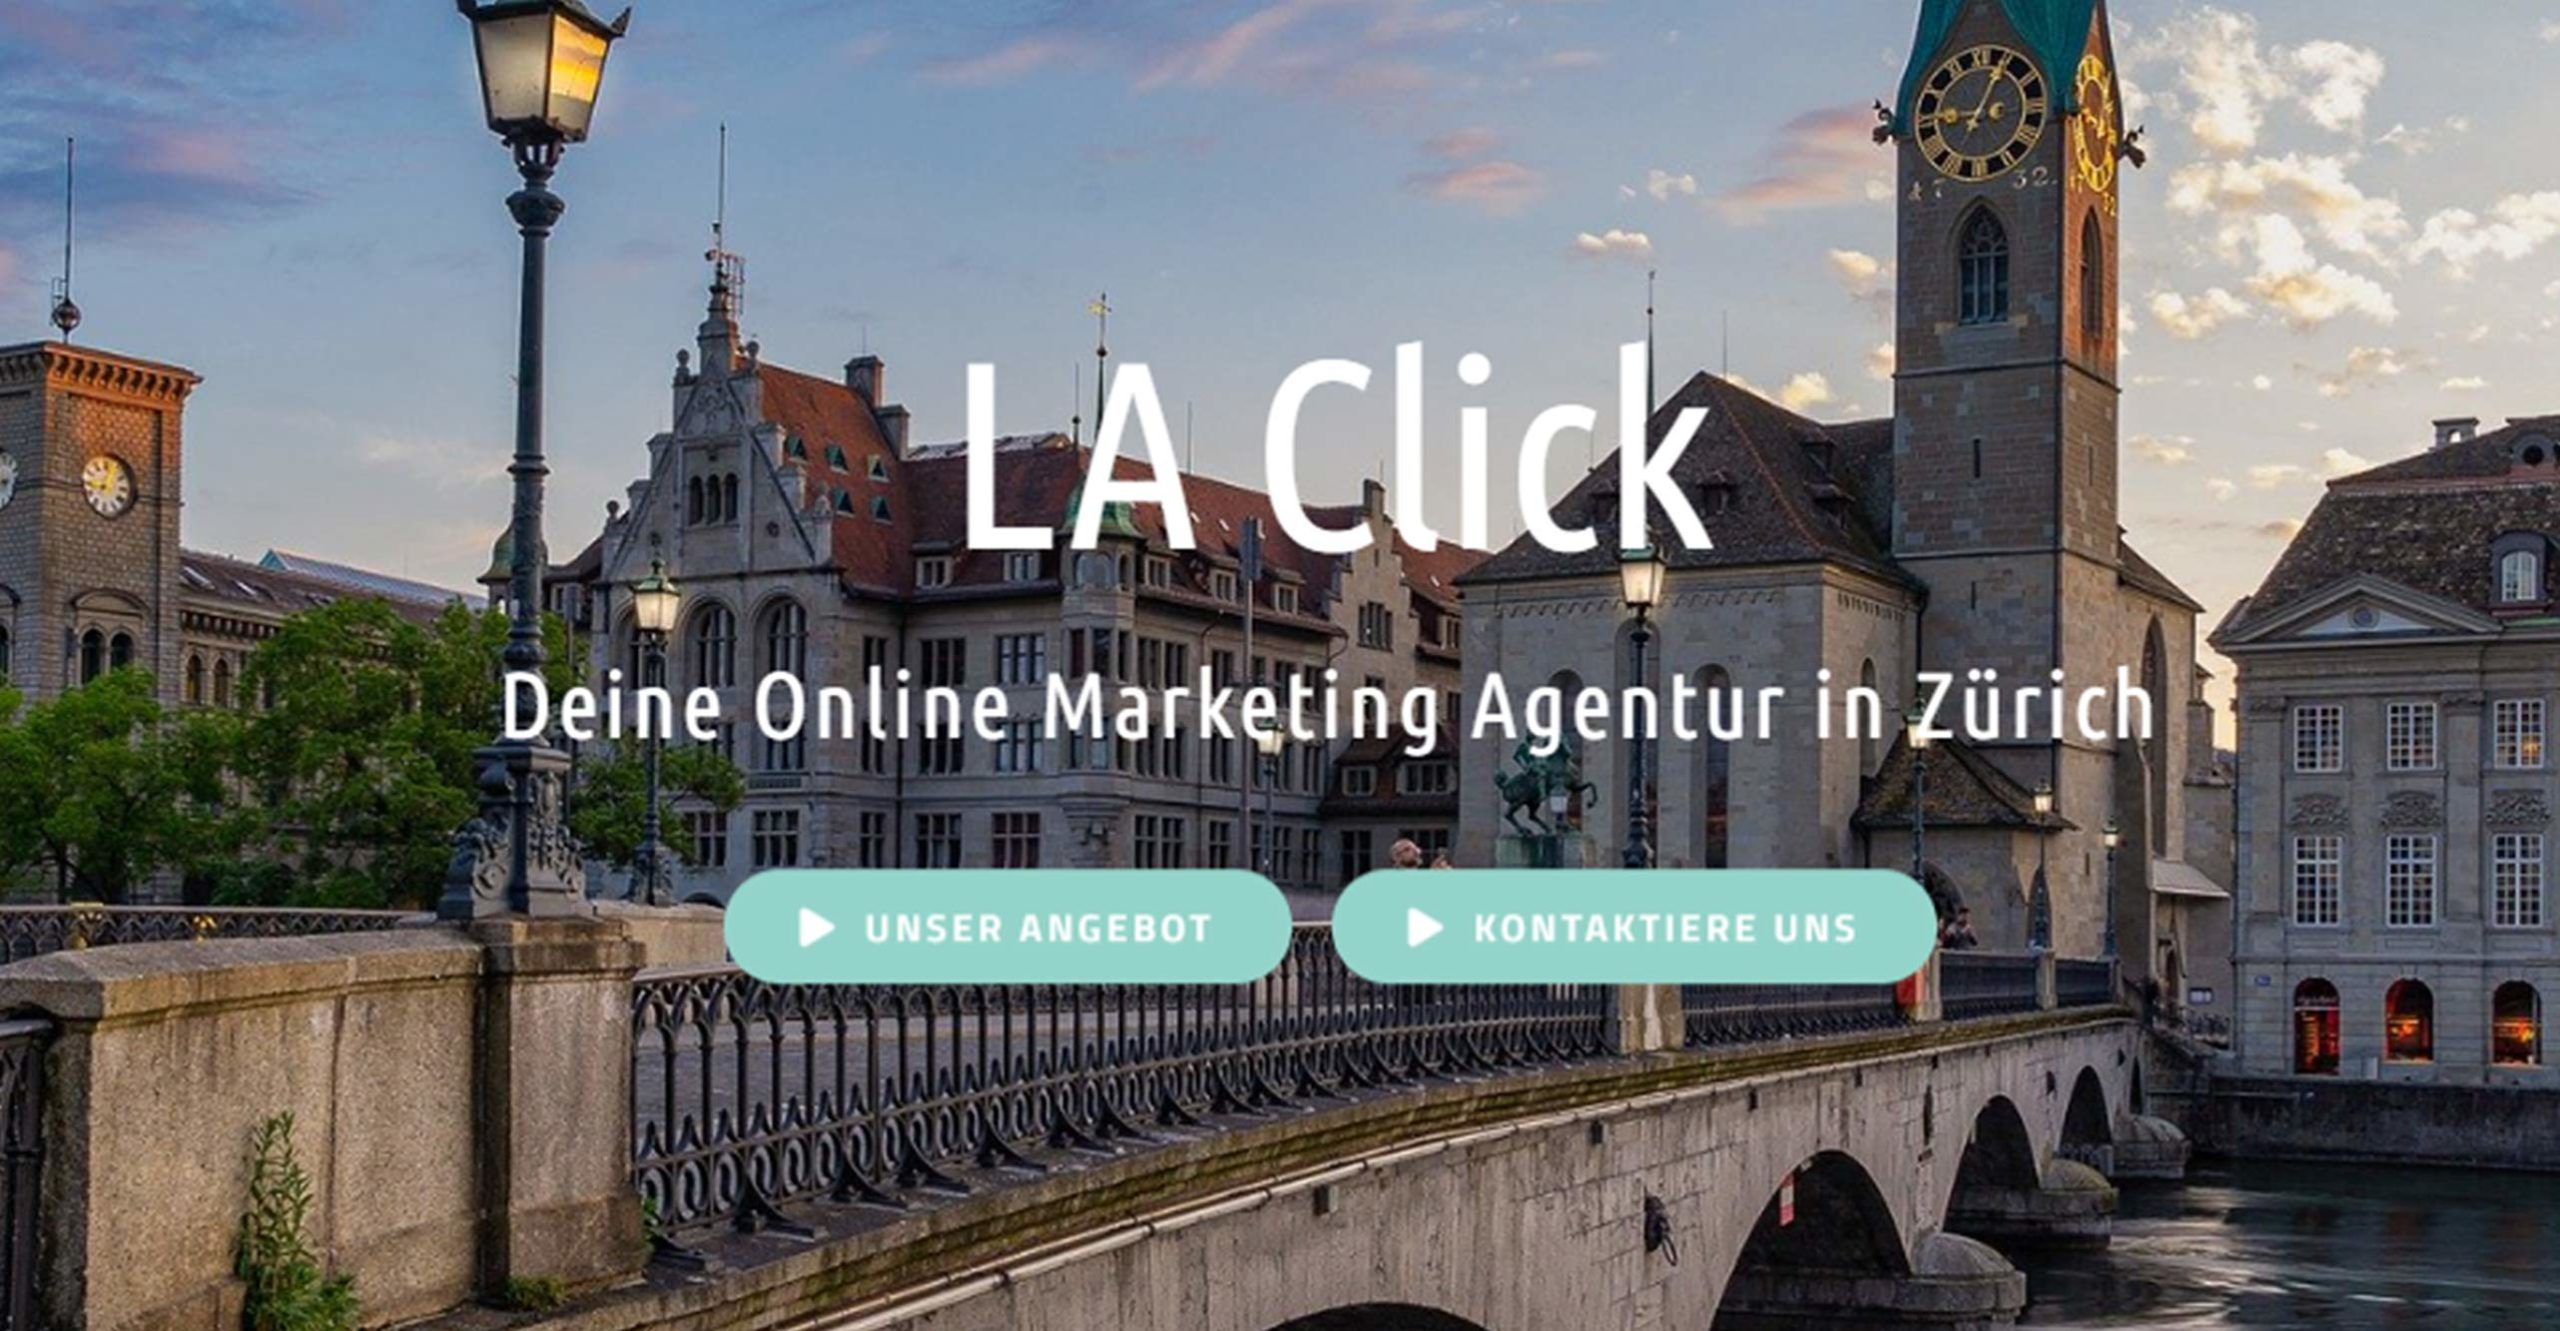 LA Click Website Call to Action